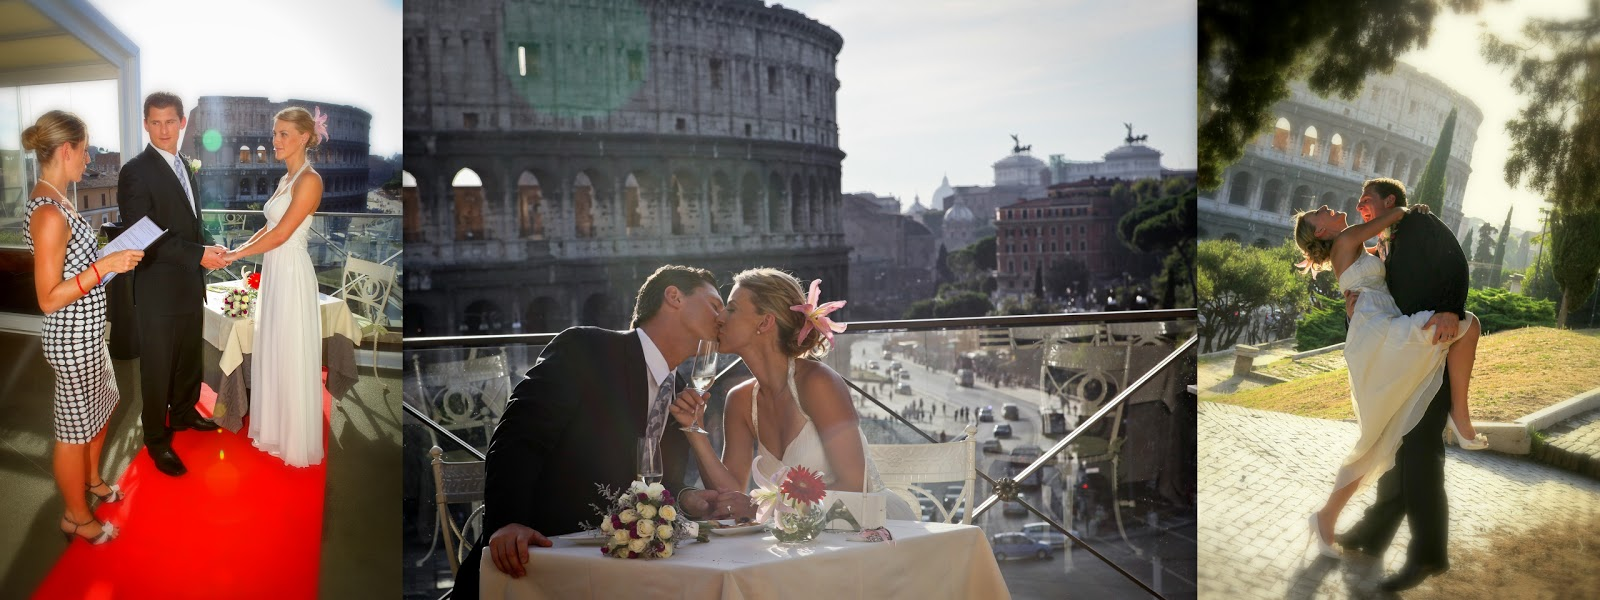 PLUS With The Current Exchange Rate Between Euro And AUD Favouring Australians Theres No Better Time To Book Your Rome Wedding In 2012